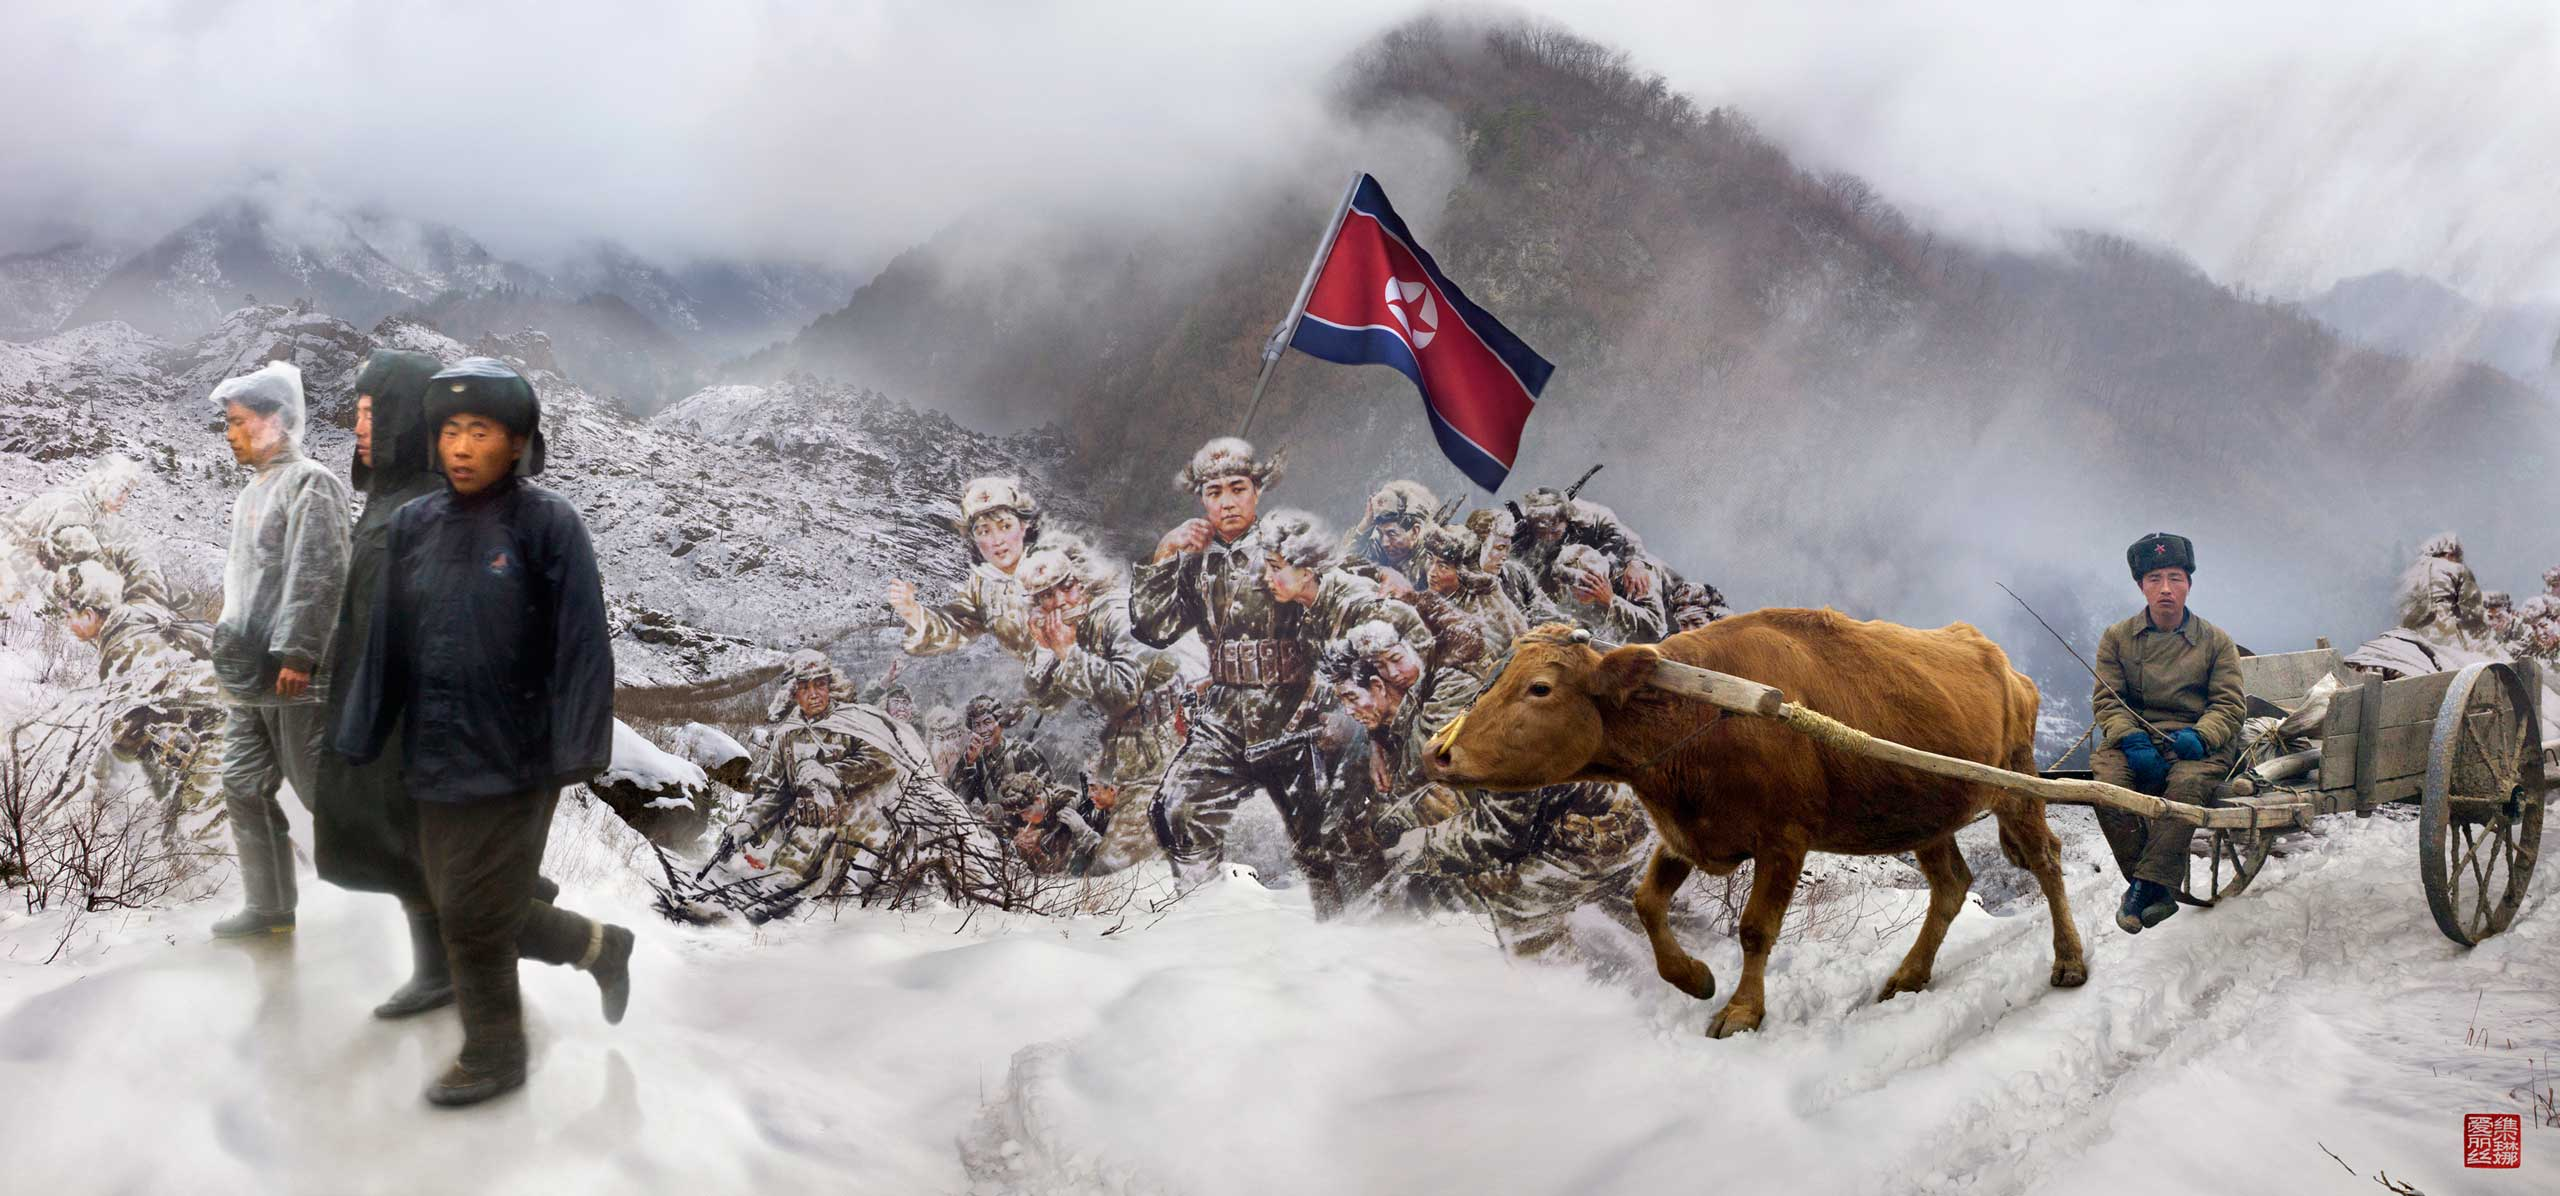 Epic of the Soldiers. From series North Korea - A Life between Propaganda and Reality.